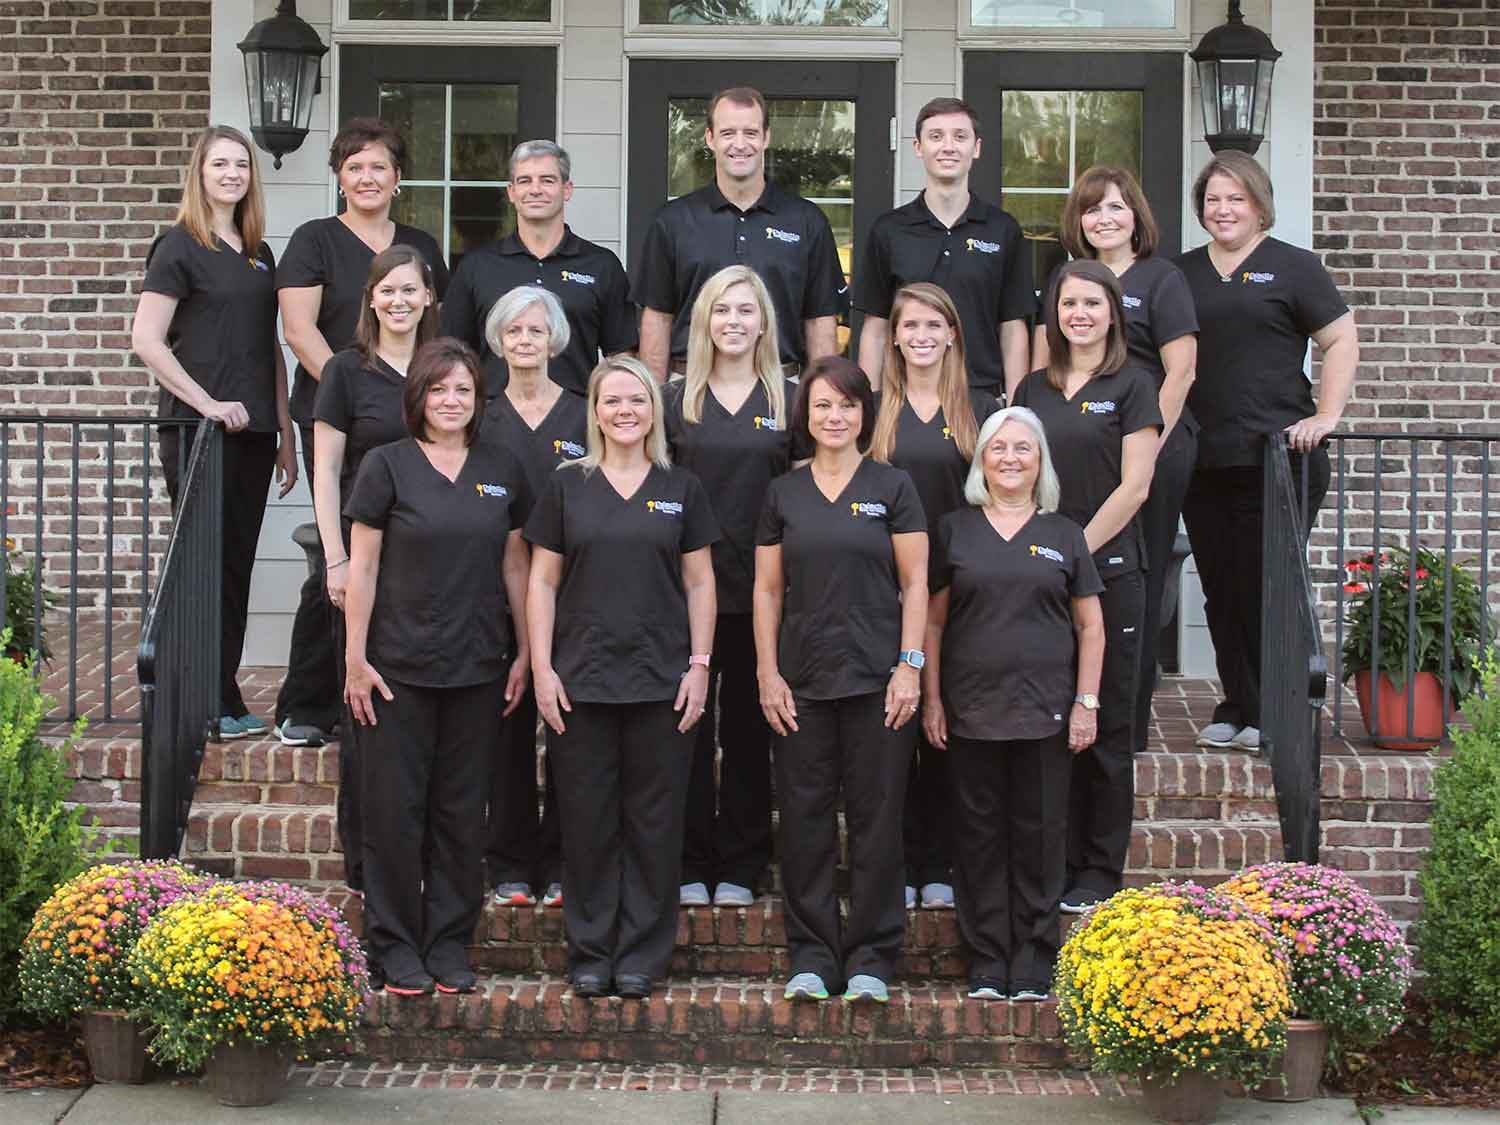 Palmetto Family and Cosmetic Dentistry Team in Sumter SC Tahoe Drive Location